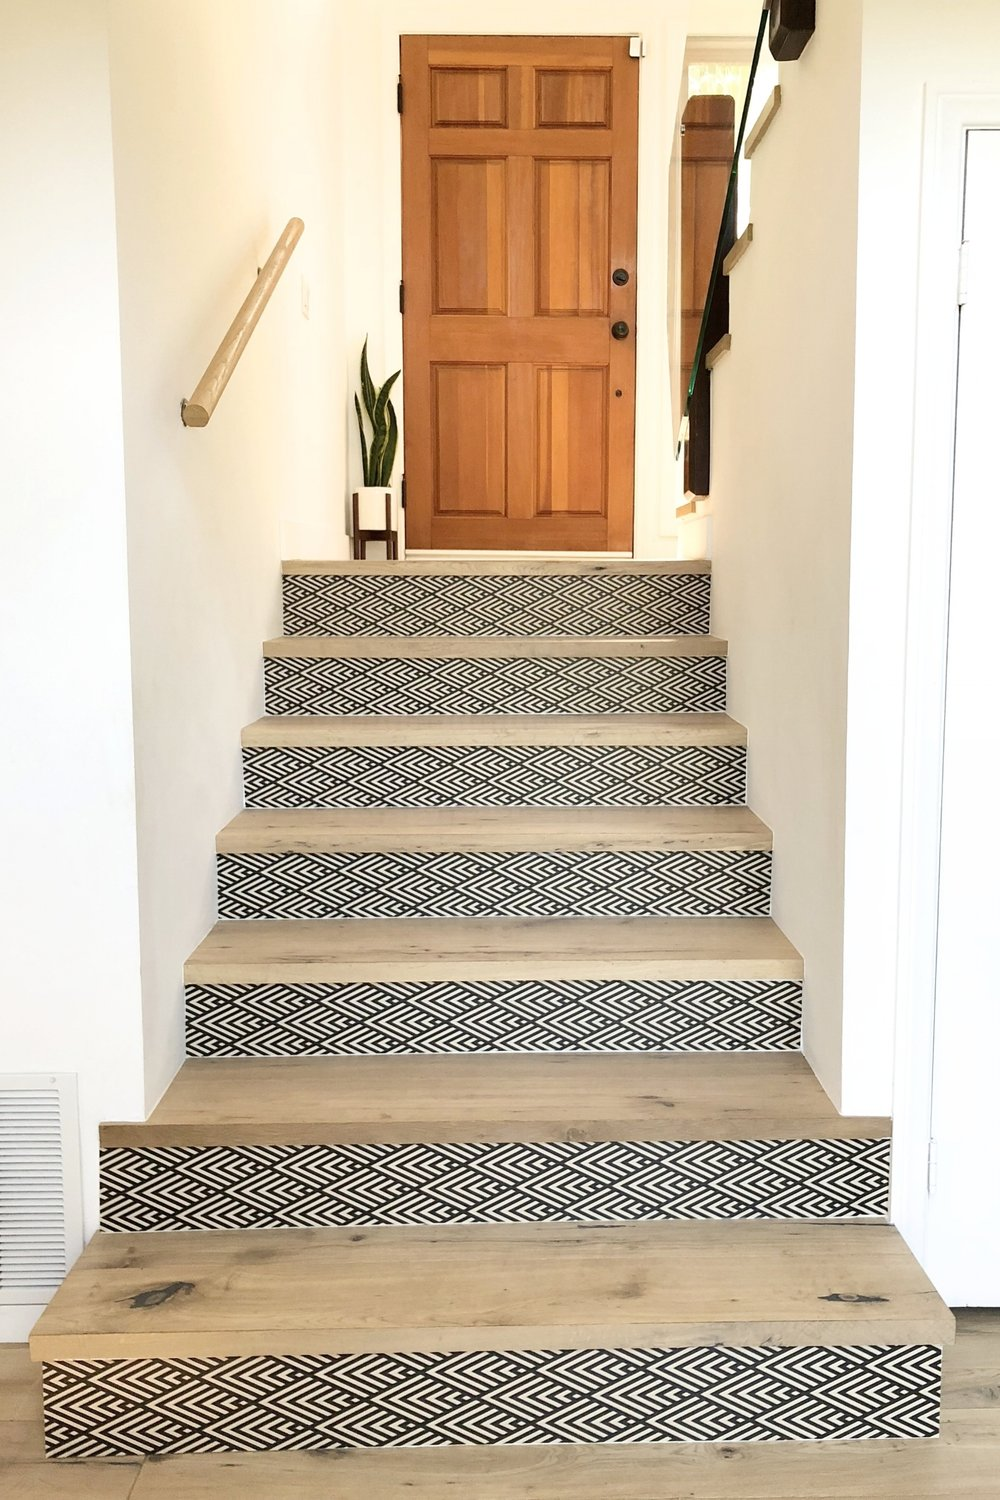 DIY Wallpapered stairs